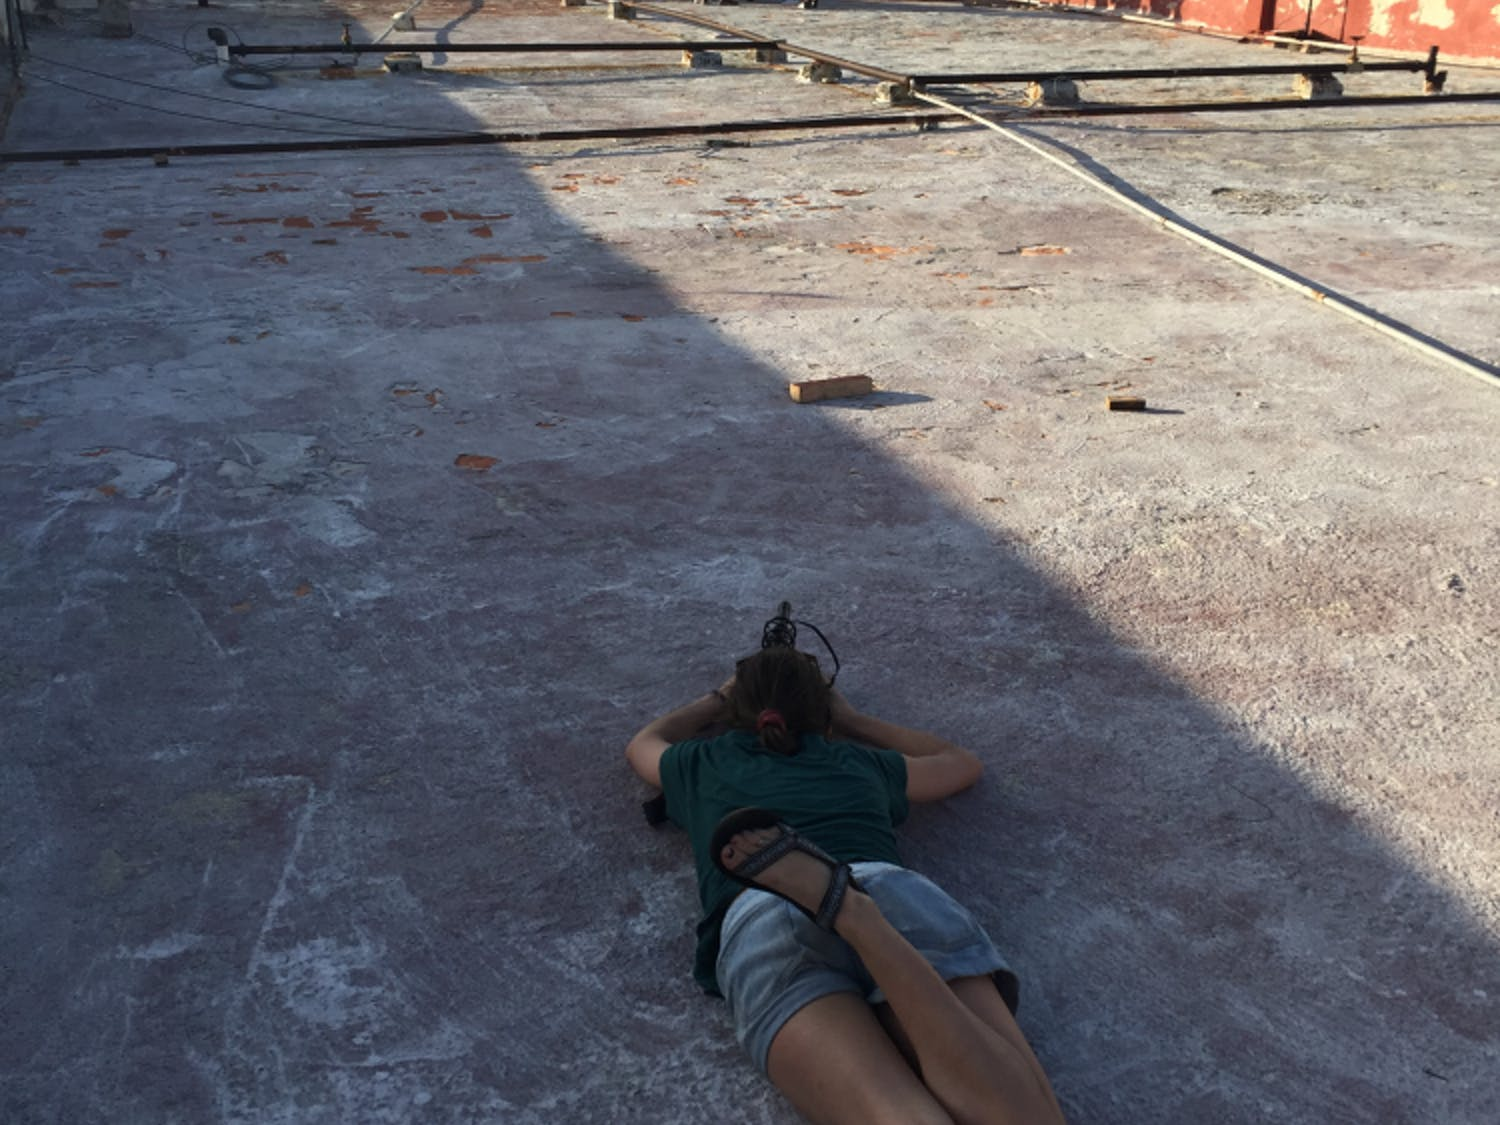 Journalism student Darian Woehr films at theMalecón in Havana. Photo courtesy Emily Yue.